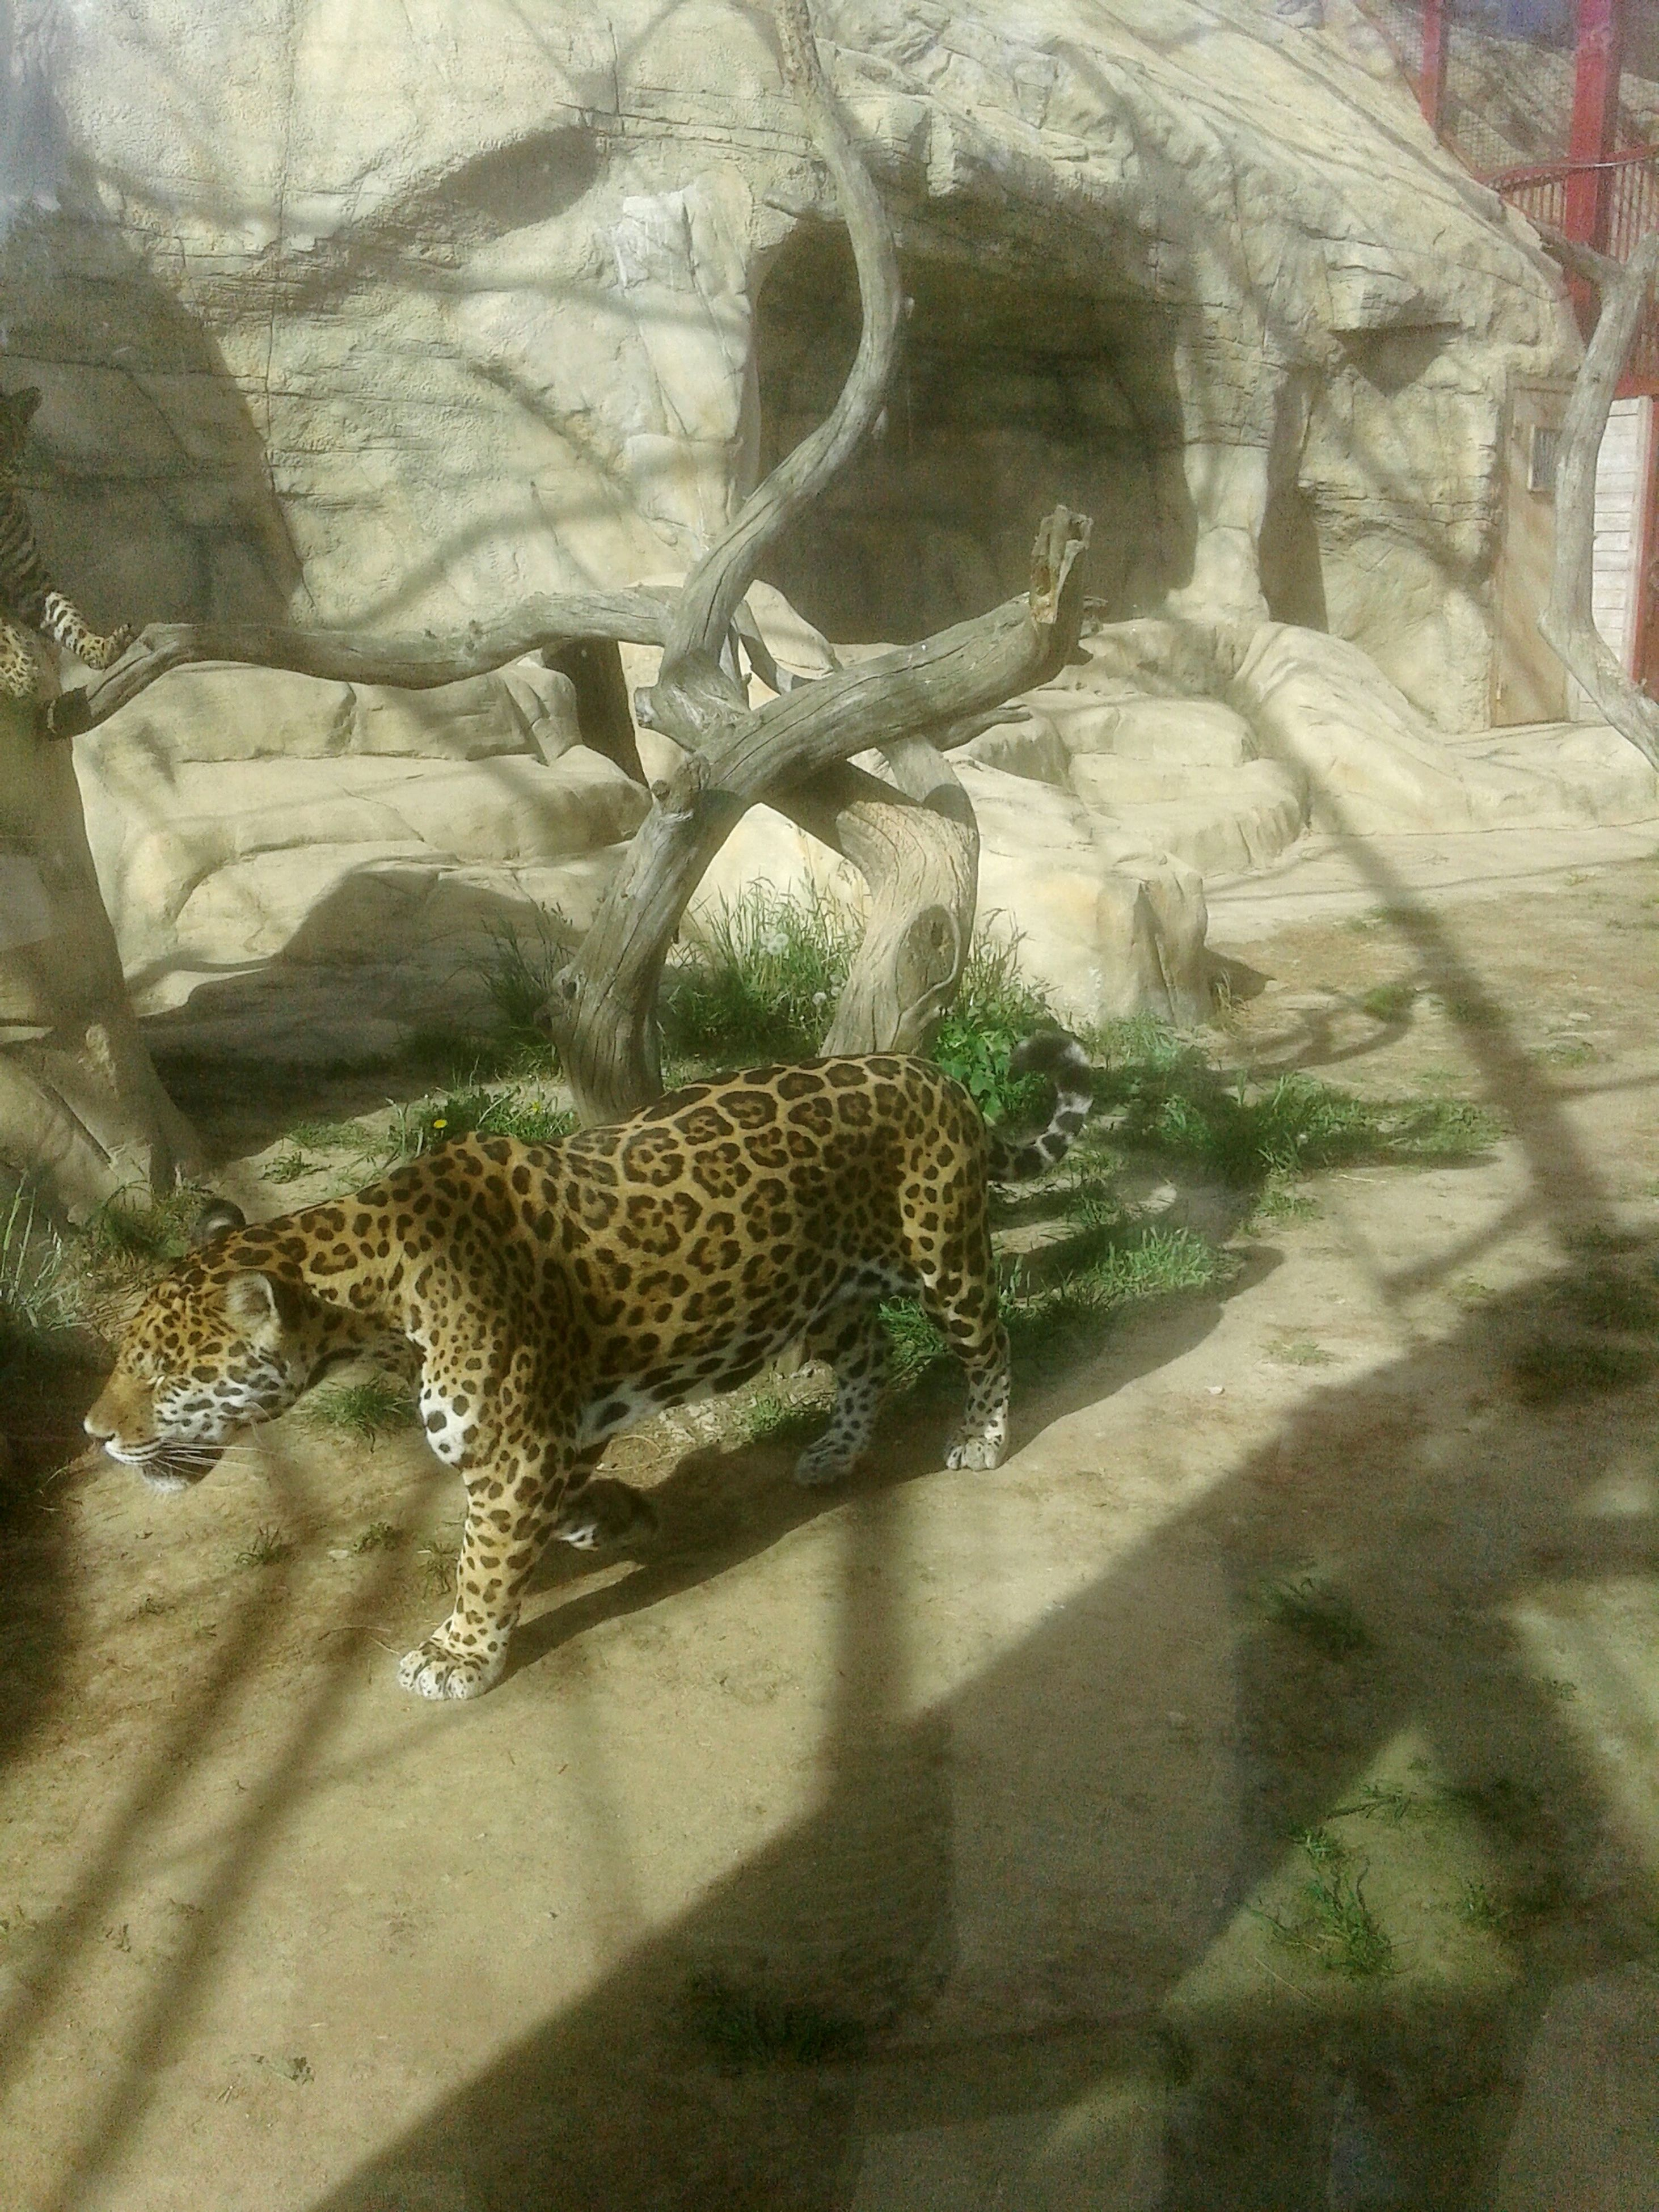 animals in the wild, animal themes, shadow, one animal, sunlight, day, spotted, leopard, mammal, safari animals, cheetah, animal wildlife, no people, animal markings, nature, outdoors